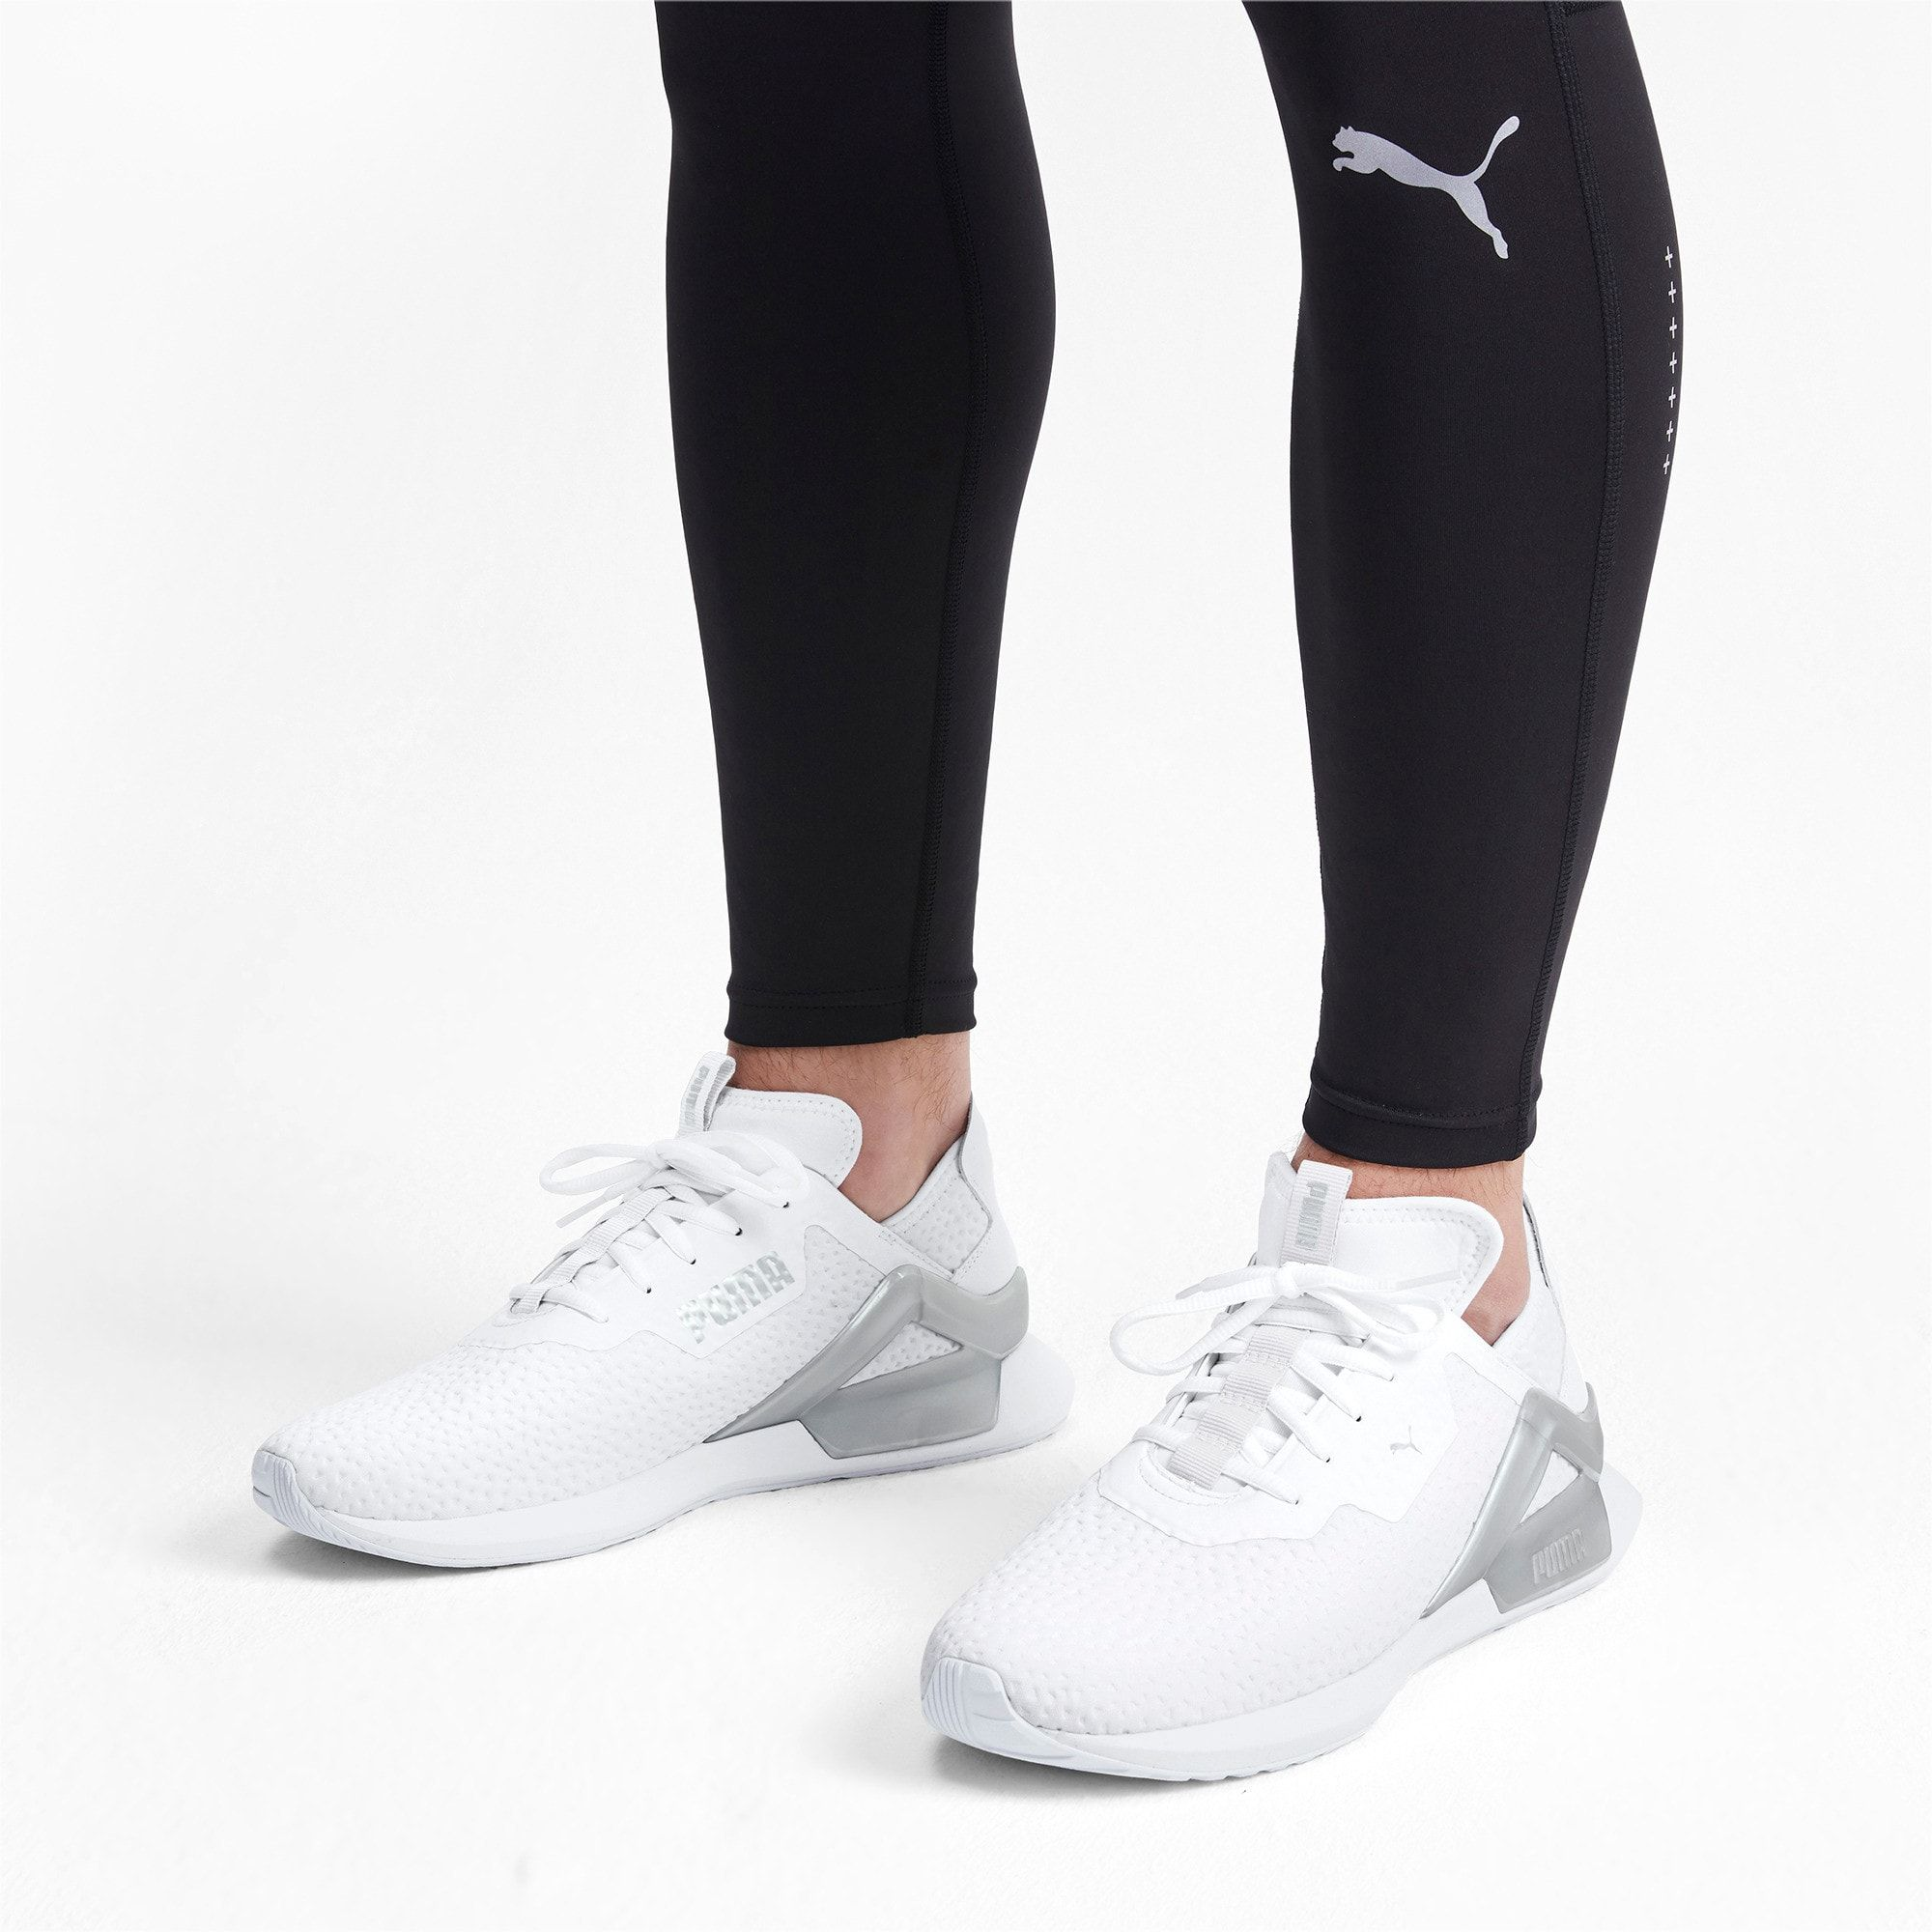 Pin by just rachel on Shooooeeeess | Puma sneakers shoes